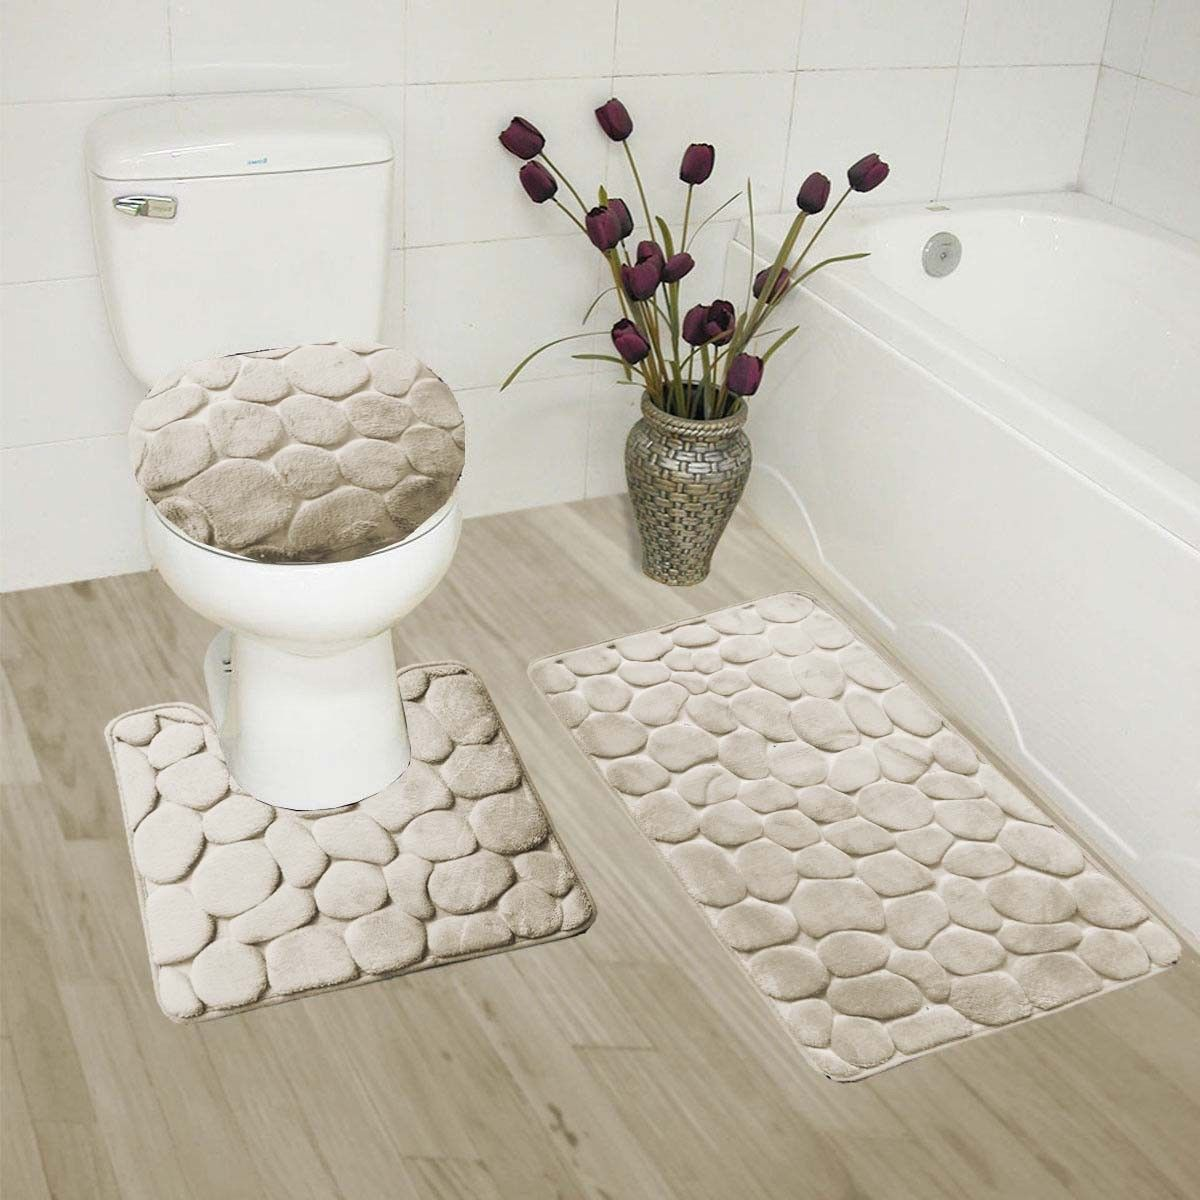 """BEIGE 3-Piece Rock Memory Foam Bathroom Mat Set, Flannel Embossed Rug 19""""x 30"""", Contour Mat 19""""x19"""", and Toilet Lid Cover 19""""x19"""" with Non-Skid Rubber Back"""